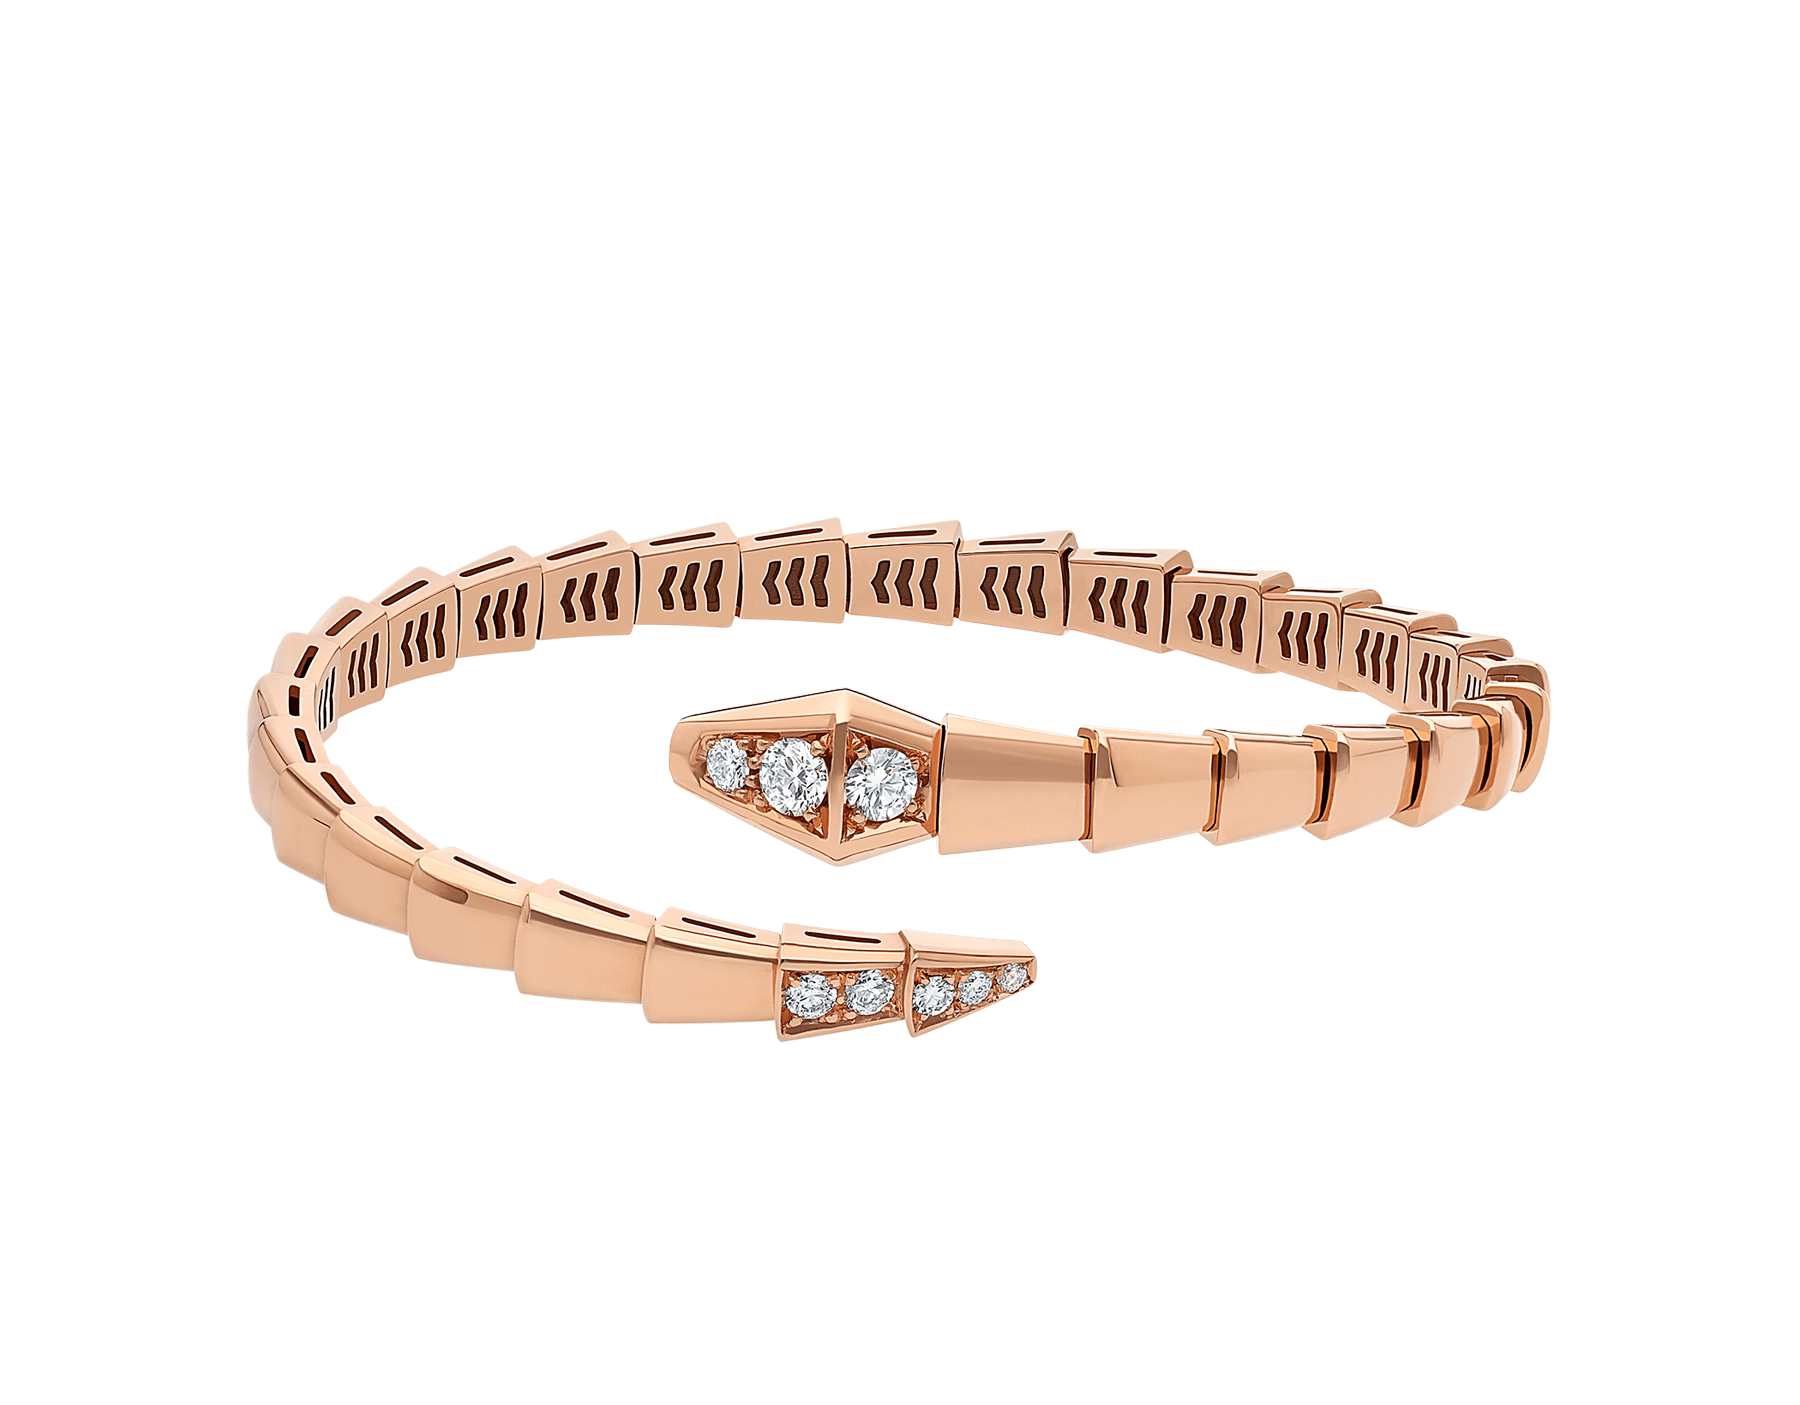 Serpenti Viper 18 kt rose gold bracelet set with demi-pavé diamonds BR858812 image 2